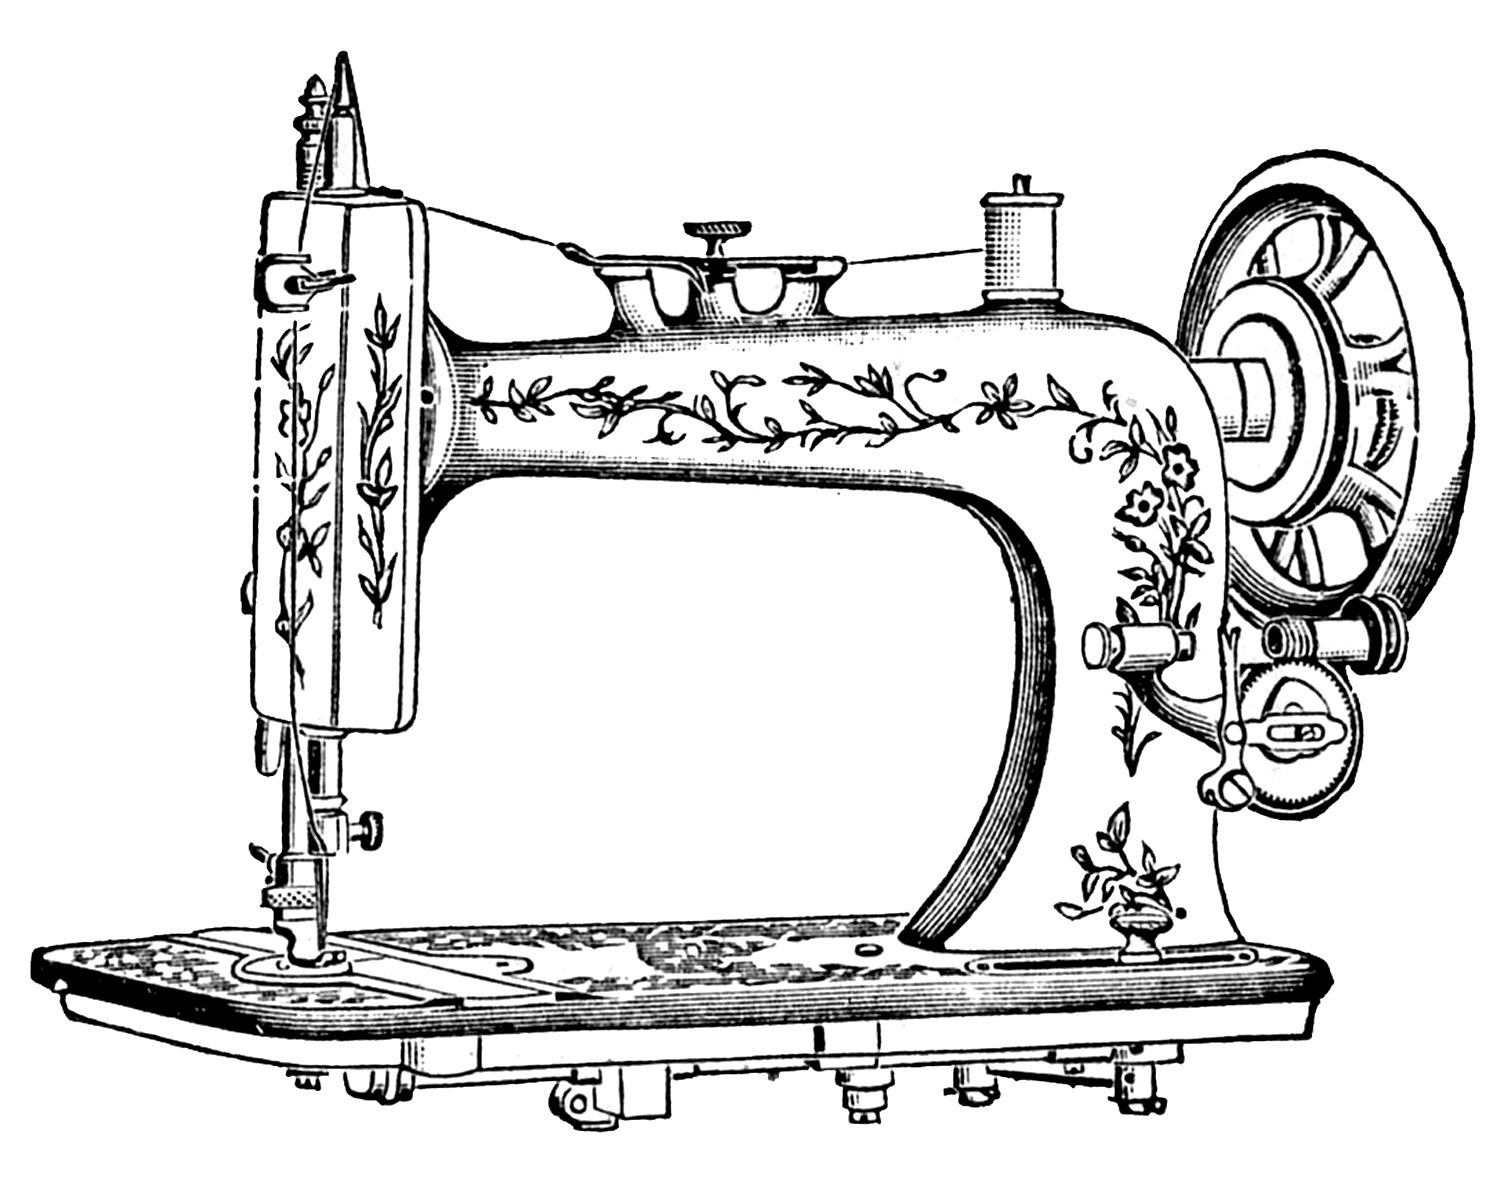 Coloring Pages Machine Coloring Pages 1000 images about coloring pages on pinterest sewing machine page school house pictures imagixs